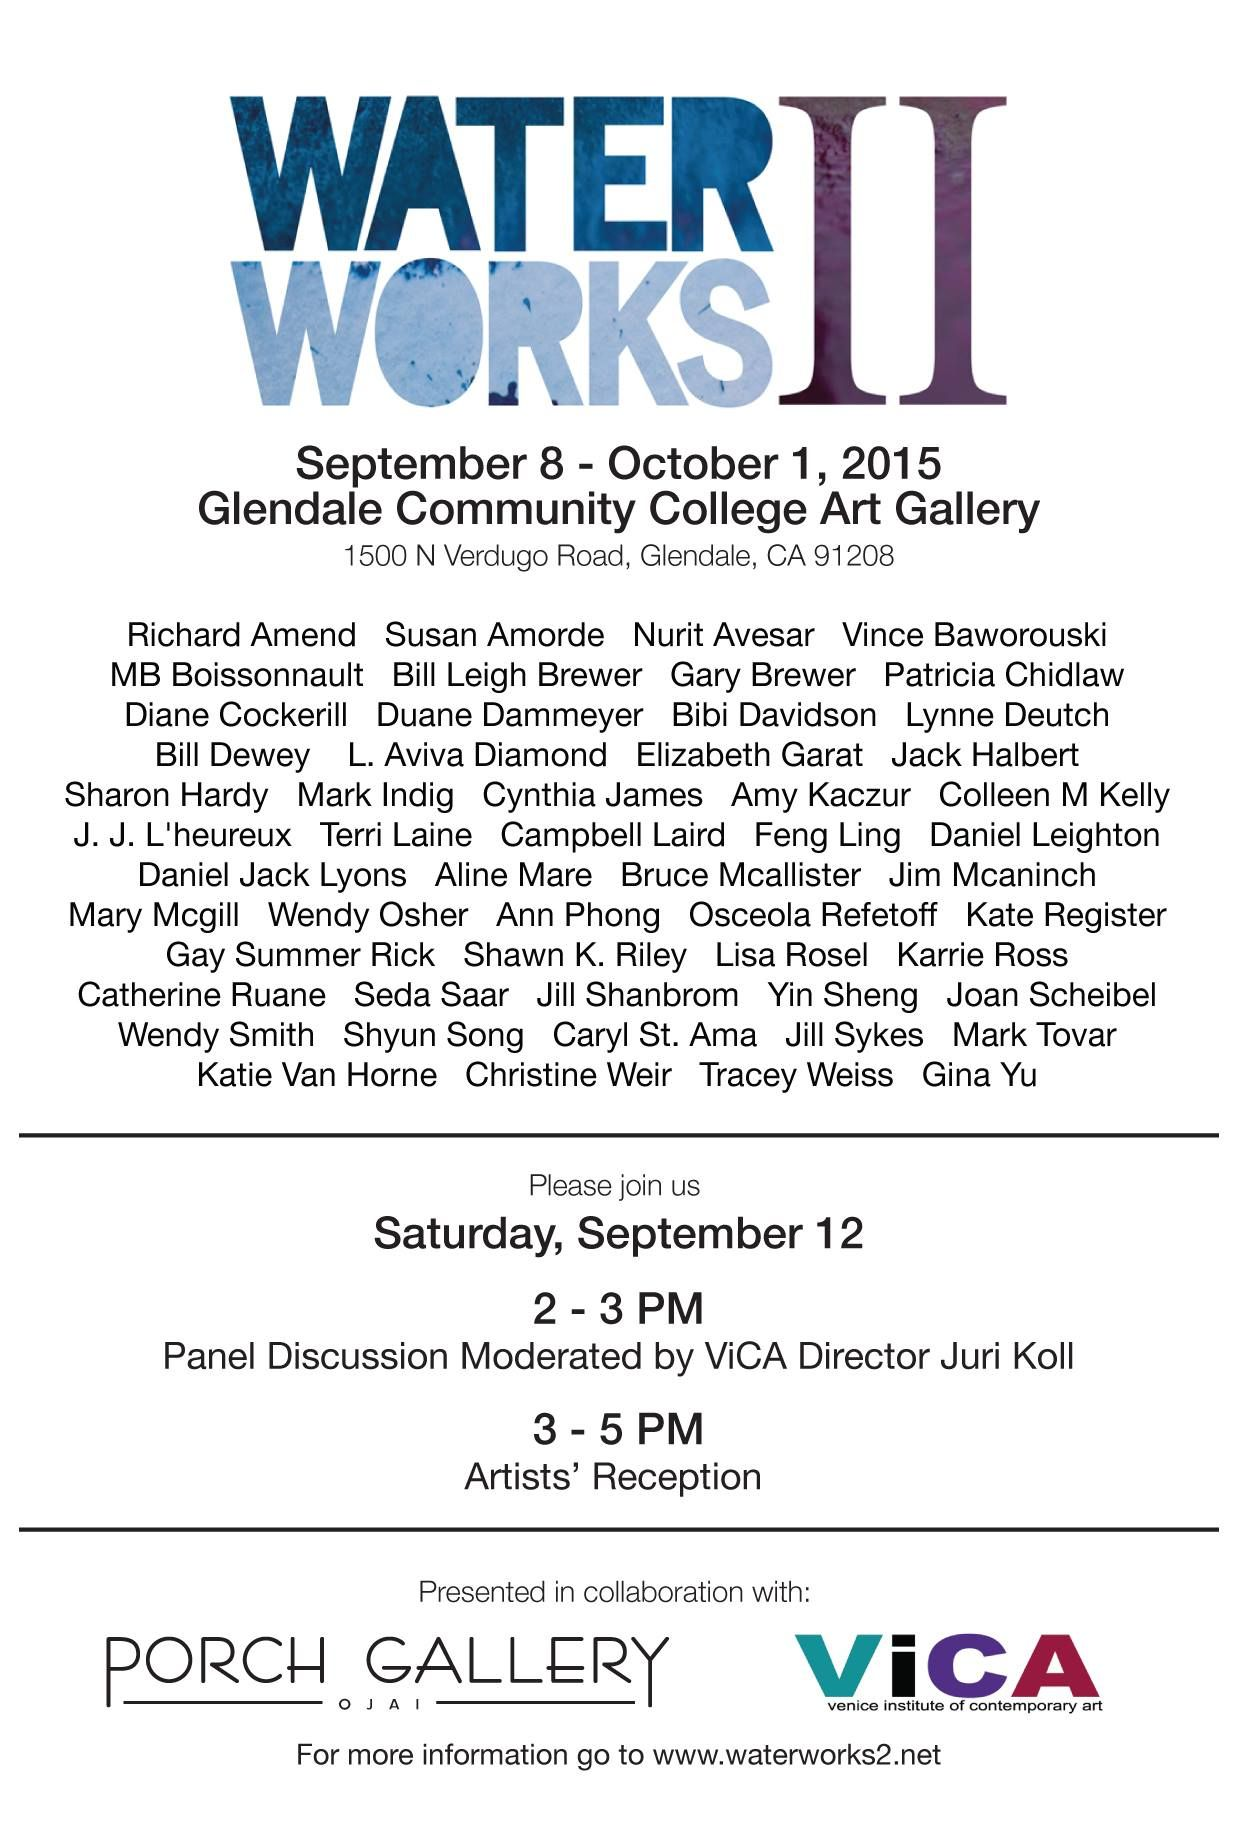 Encore exhibition! Waterworks II travels from Ojai to